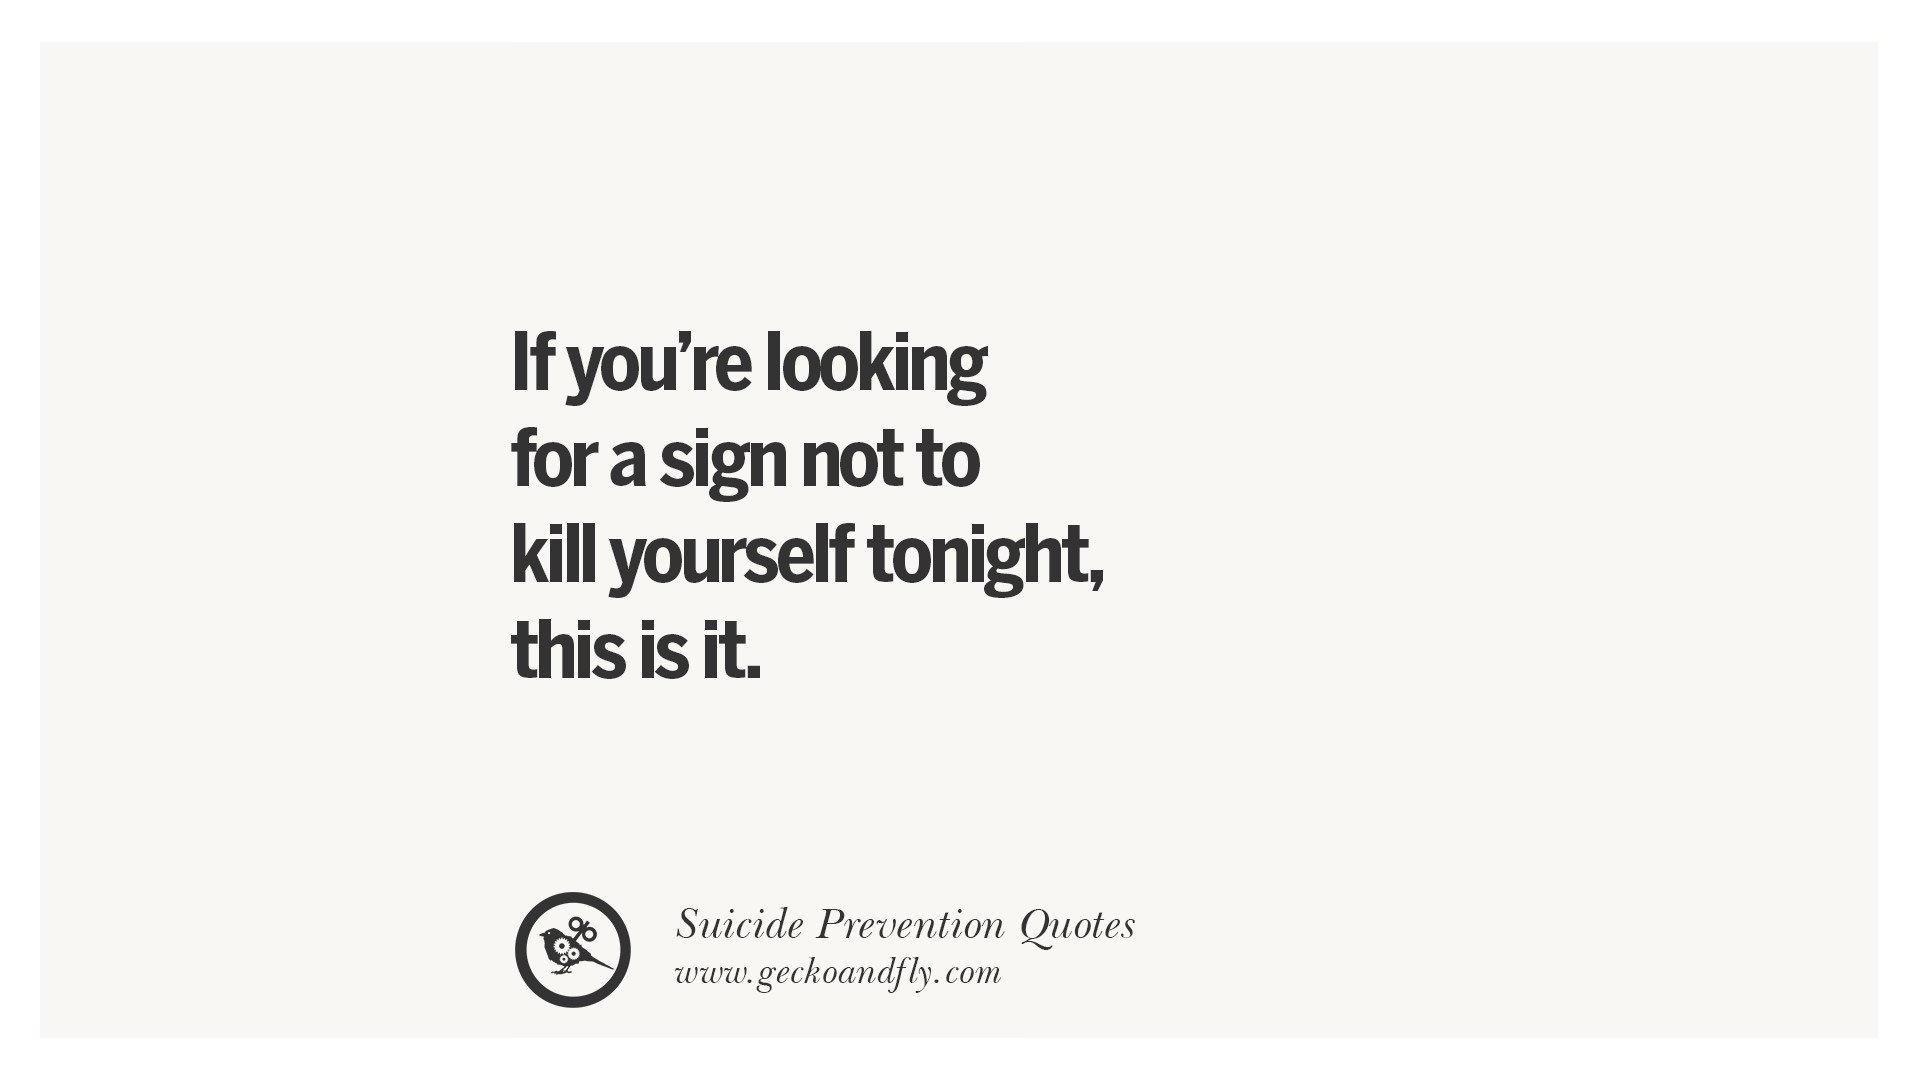 Suicide Prevention Quotes Committing Suicide Quotes About Dying To Self Picture